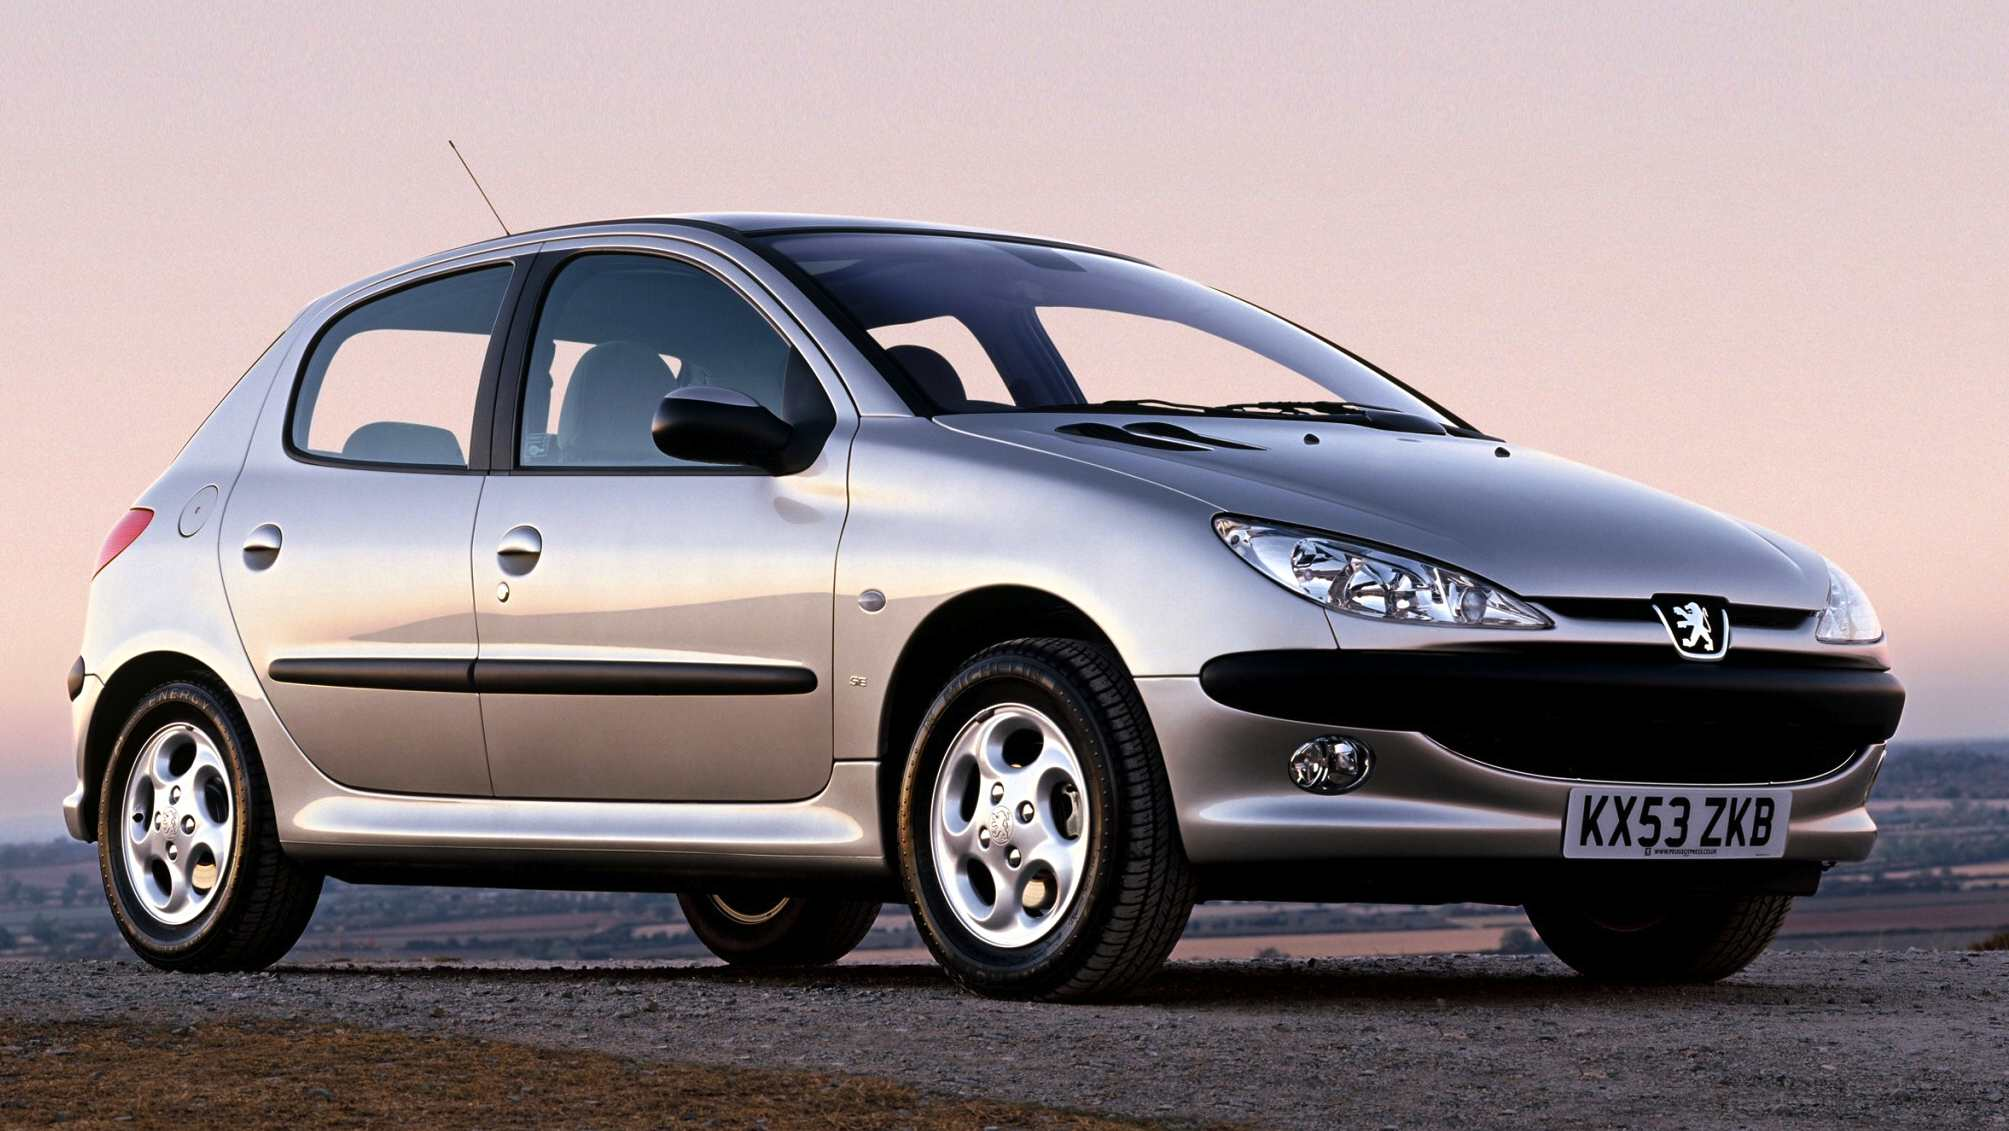 The Peugeot 206 was #1 in